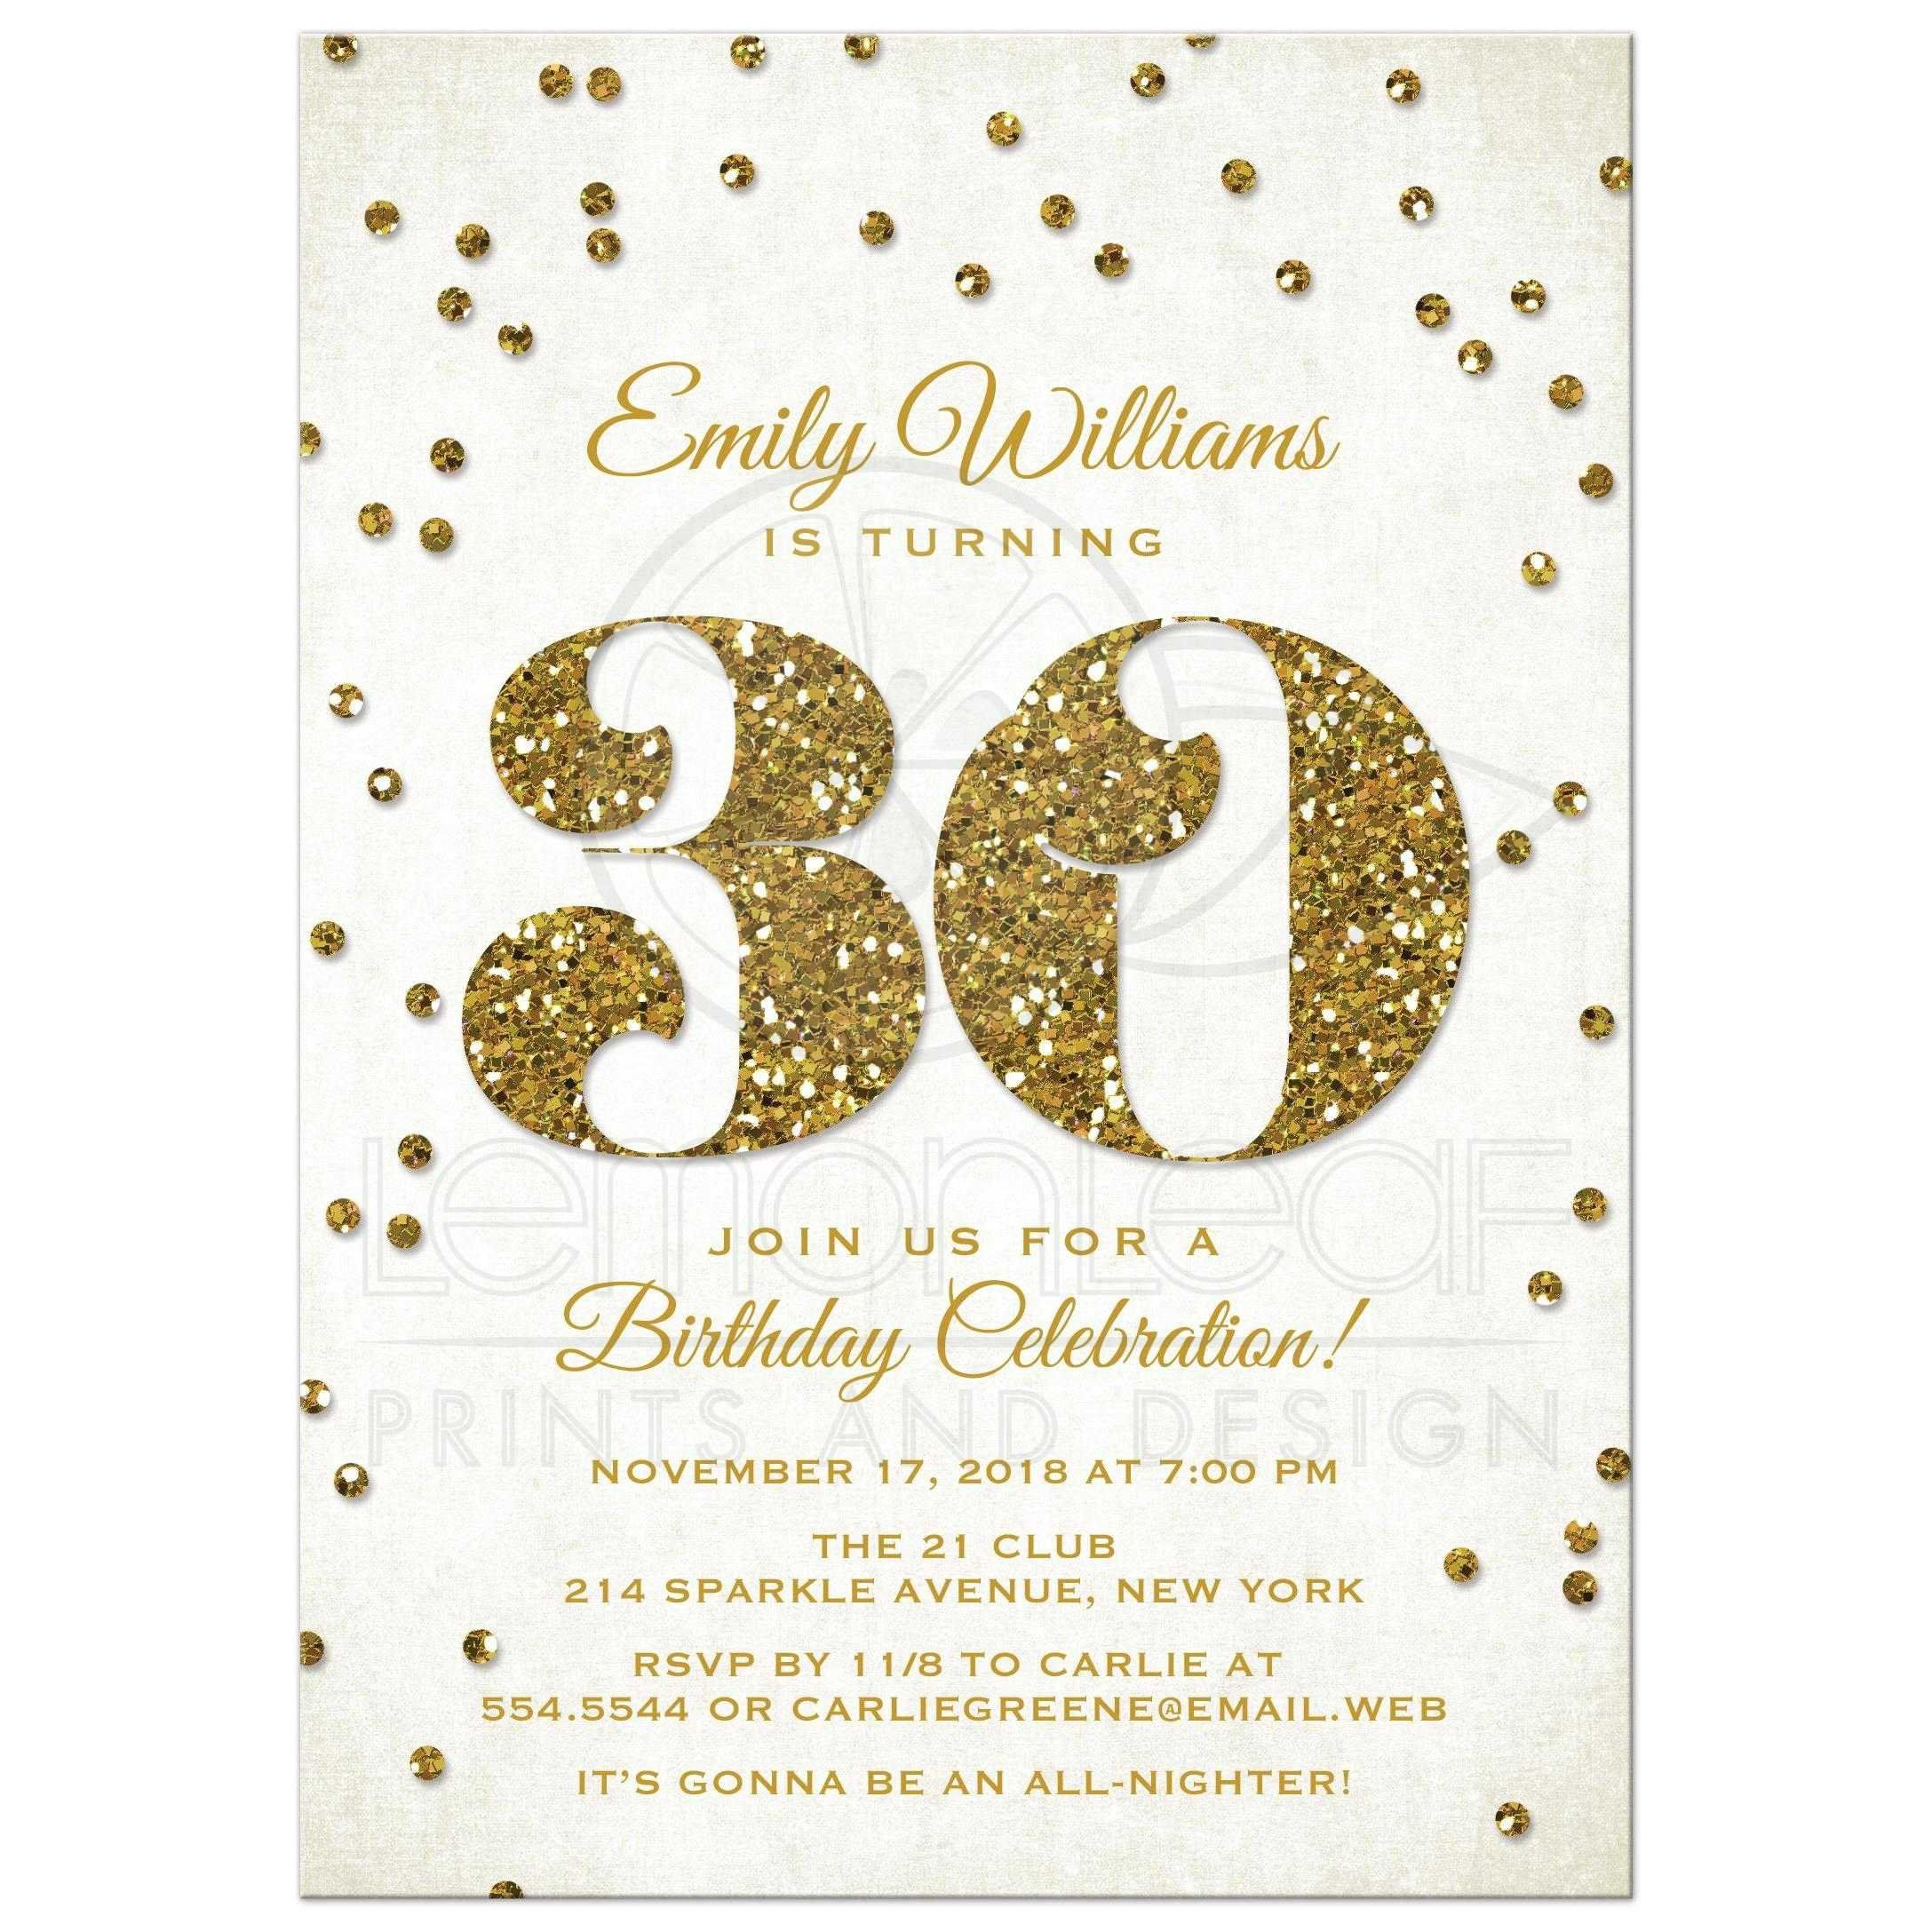 30th birthday invitations templates free printable birthday 30th birthday invitations templates free printable filmwisefo Images